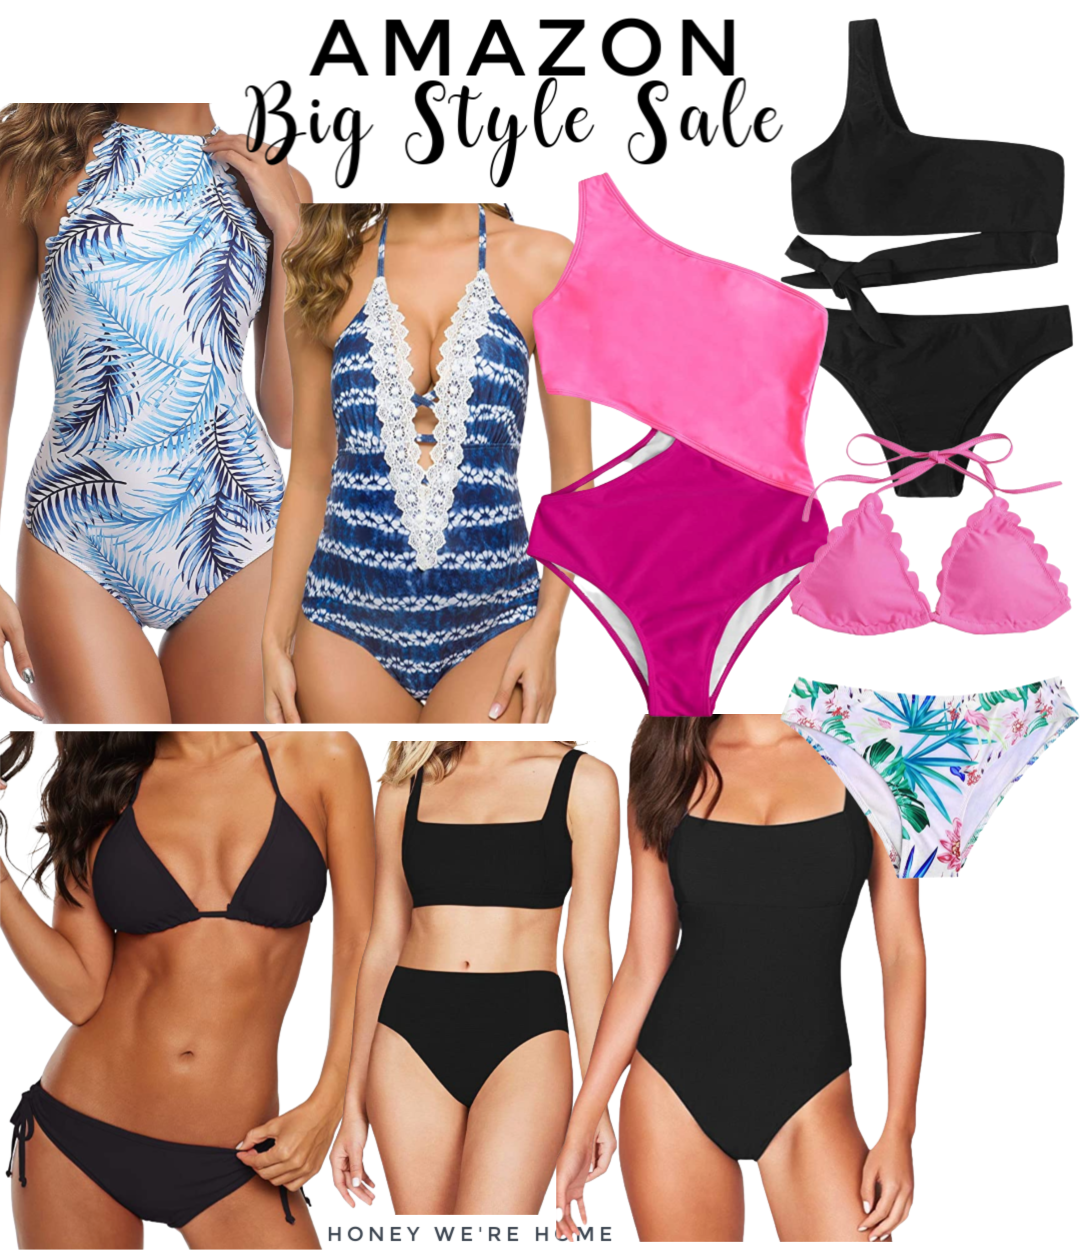 Amazon Big Style Sale Swimsuits